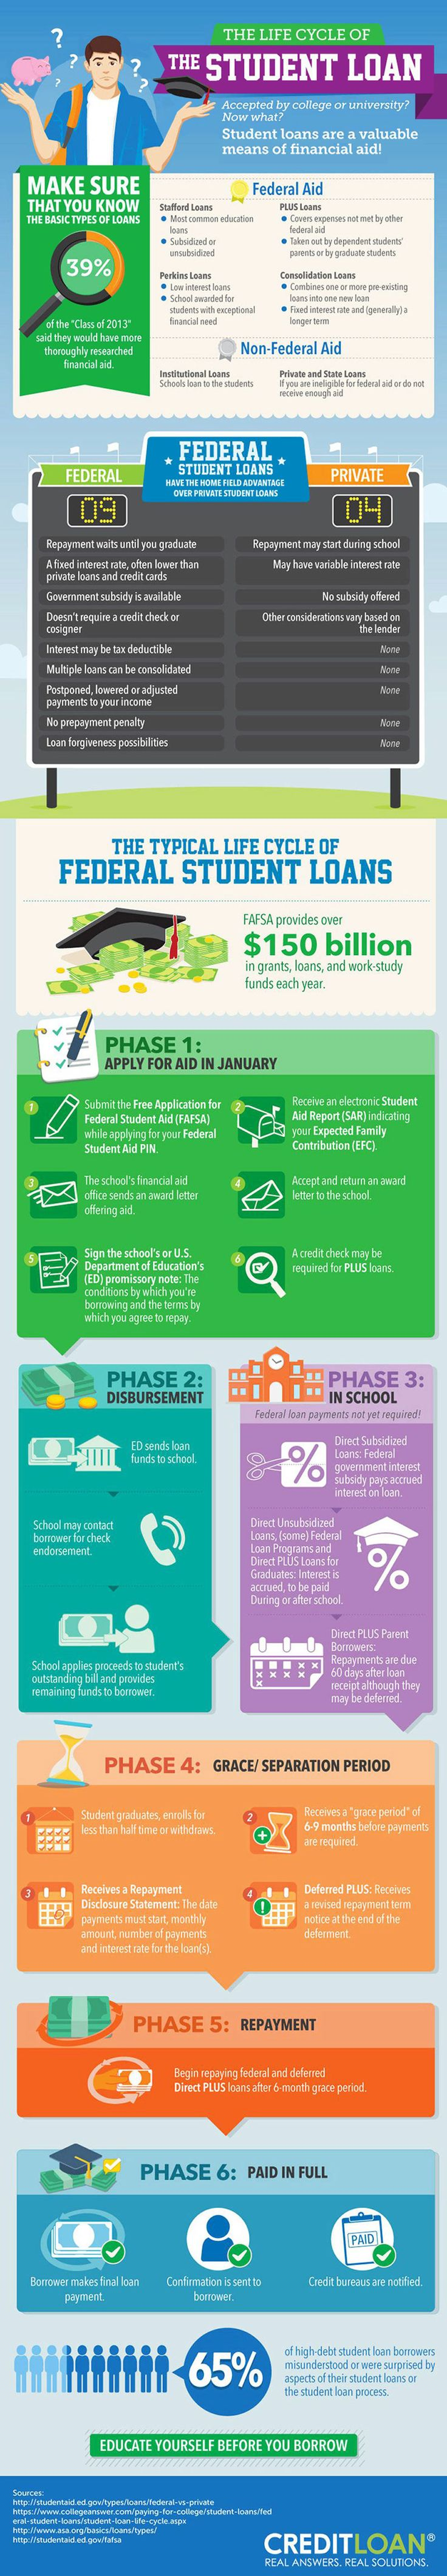 Life Cycle of Federal Student Loans - College Education Infographic. Topic: college, university, school, tuition fee.